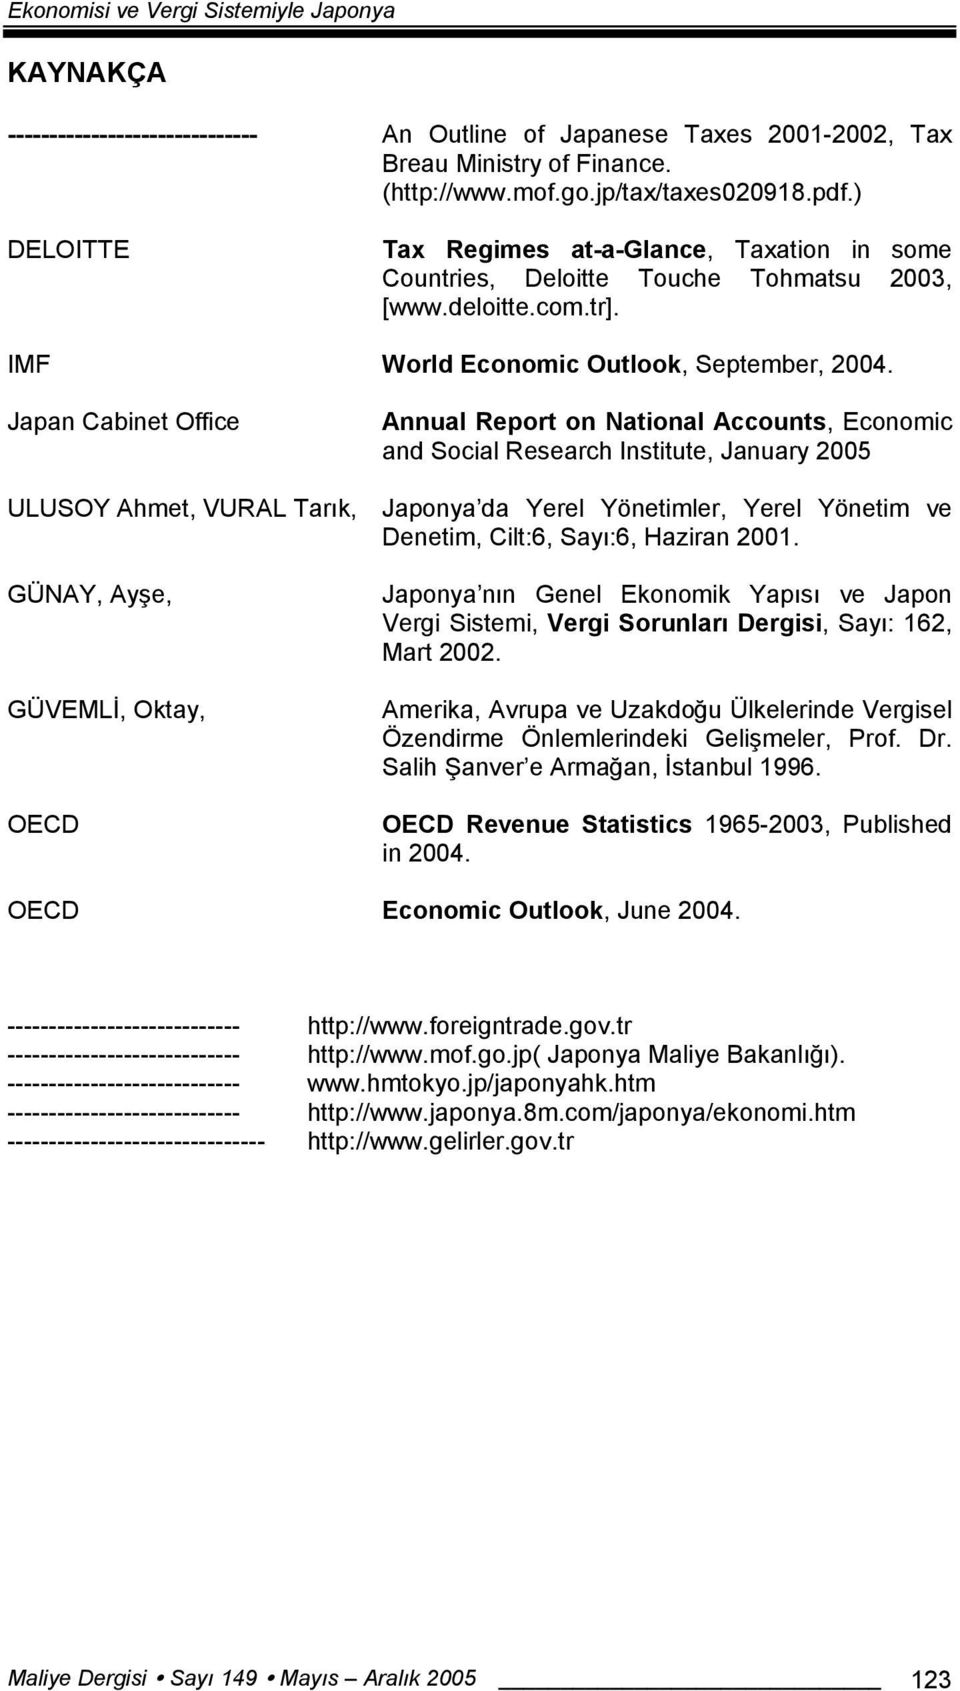 Japan Cabinet Office Annual Report on National Accounts, Economic and Social Research Institute, January 2005 ULUSOY Ahmet, VURAL Tarık, Japonya da Yerel Yönetimler, Yerel Yönetim ve Denetim, Cilt:6,